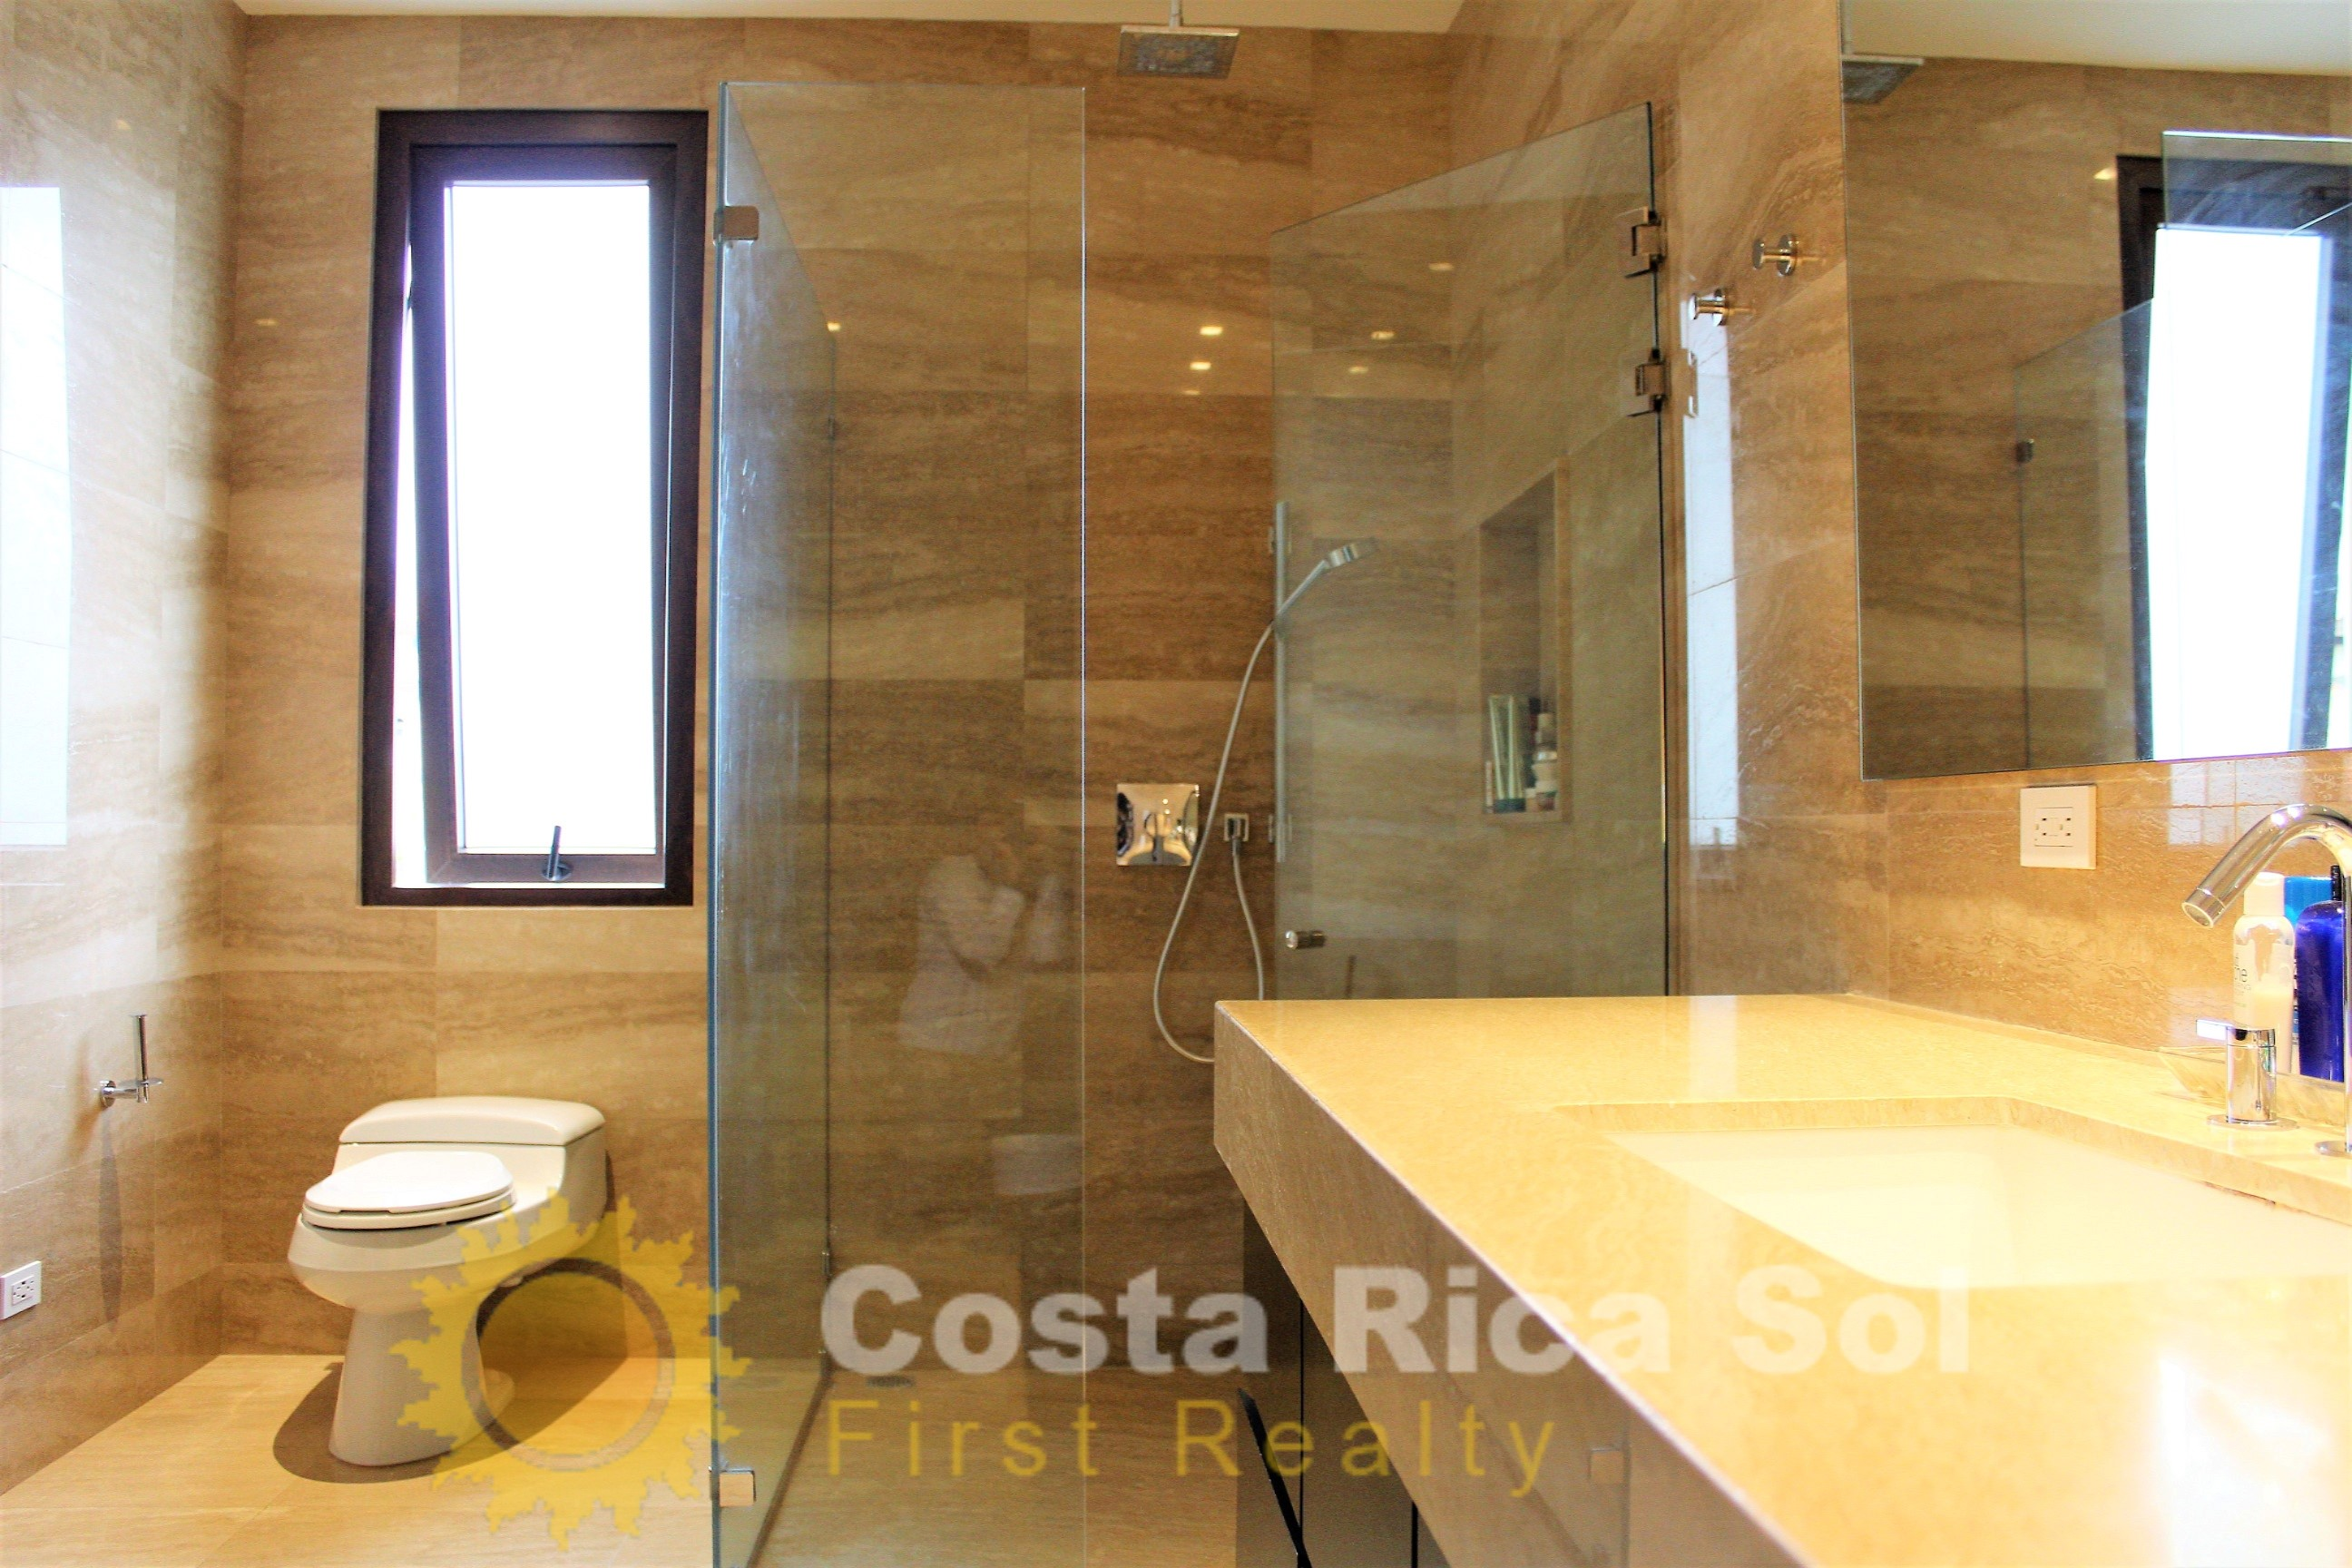 //costaricasol.com/images/jux_real_estate/realties/IMG_09161.jpg